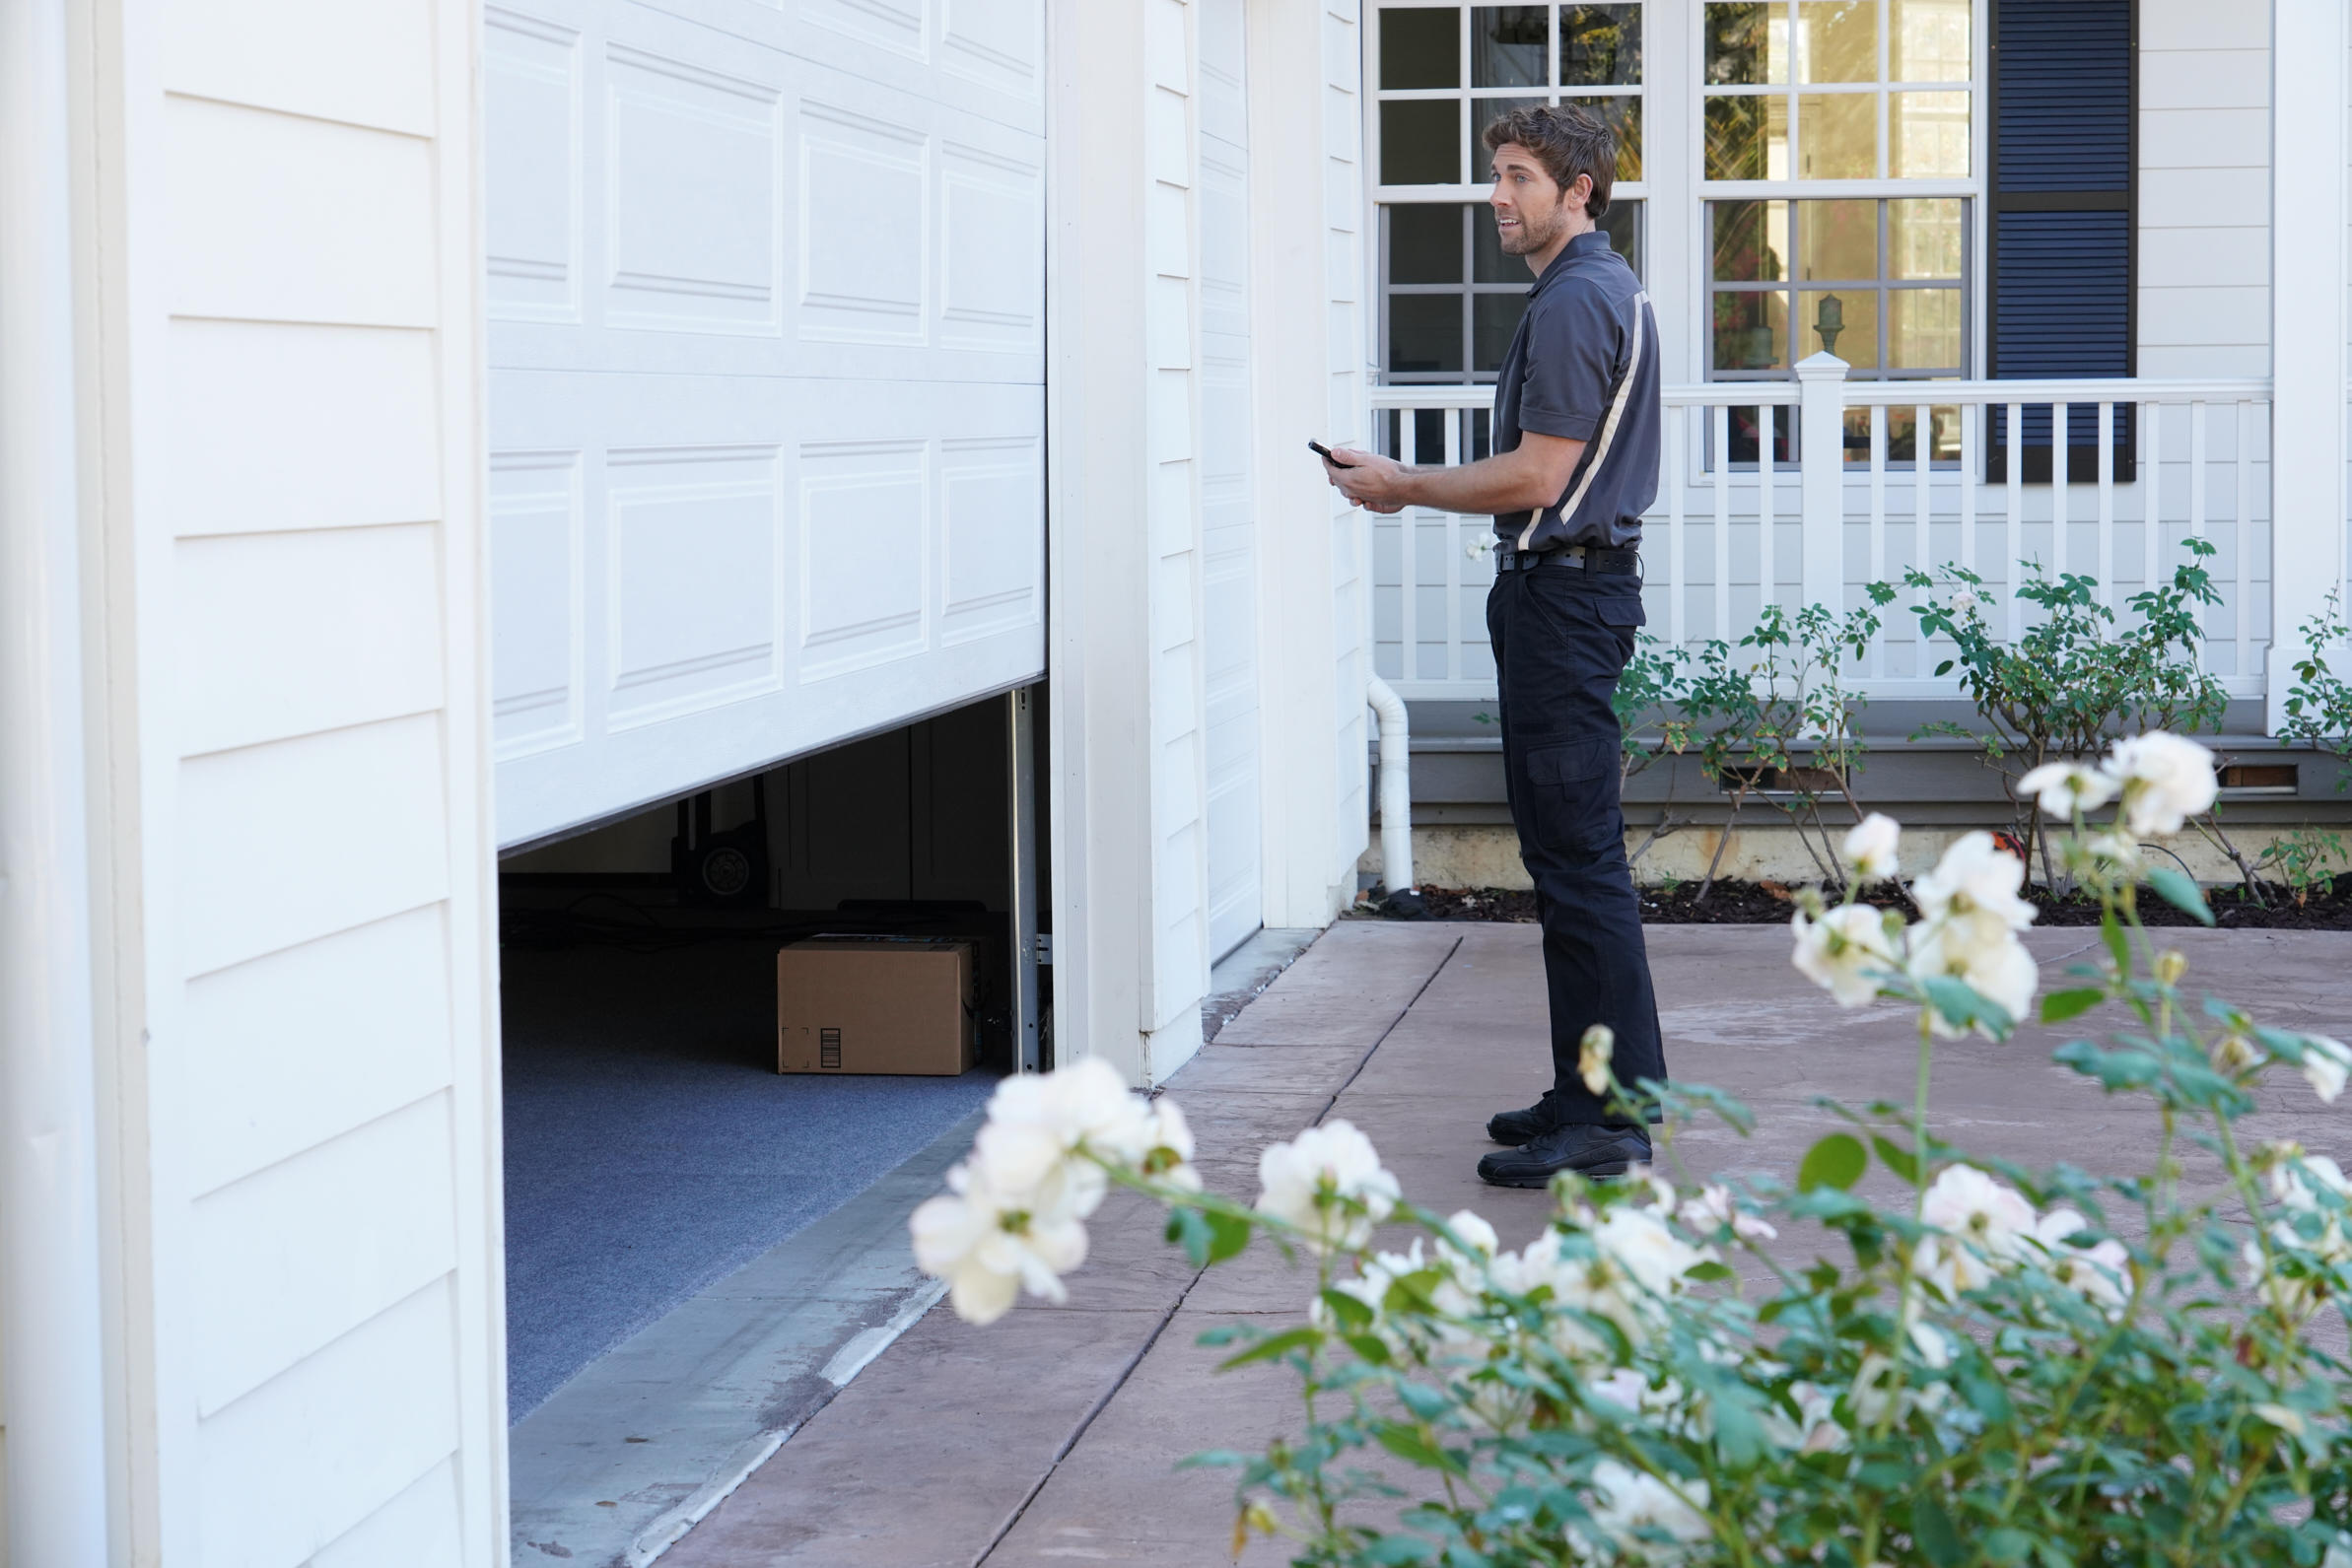 16-amazon-cloud-cam-and-in-home-delivery